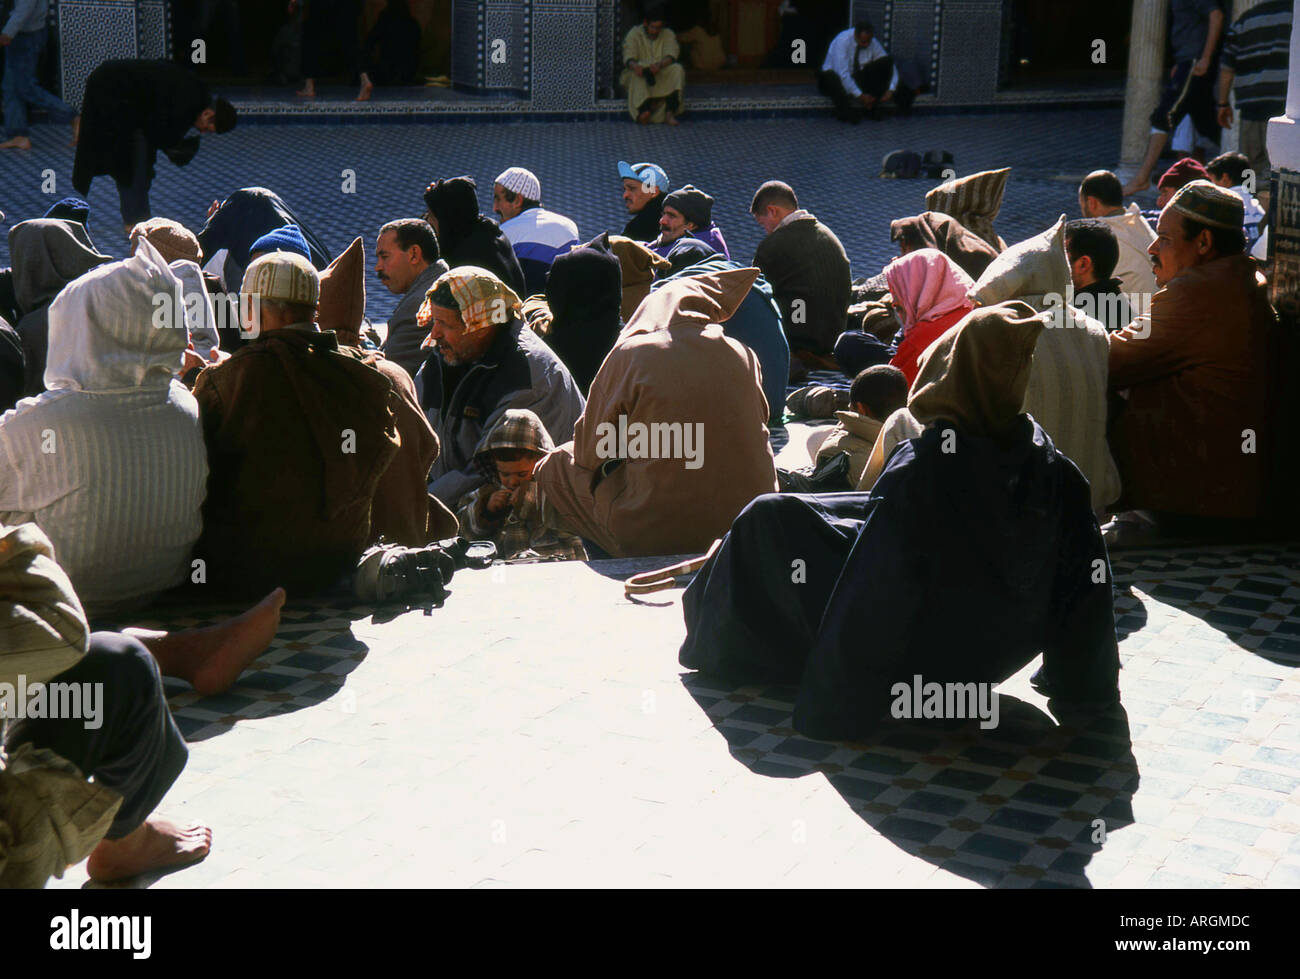 Prayers in Kairaouine Mosque Fes el Bali the Old Medina Fez Fès-Boulemane Northern Morocco Maghreb Moroccan North Africa - Stock Image